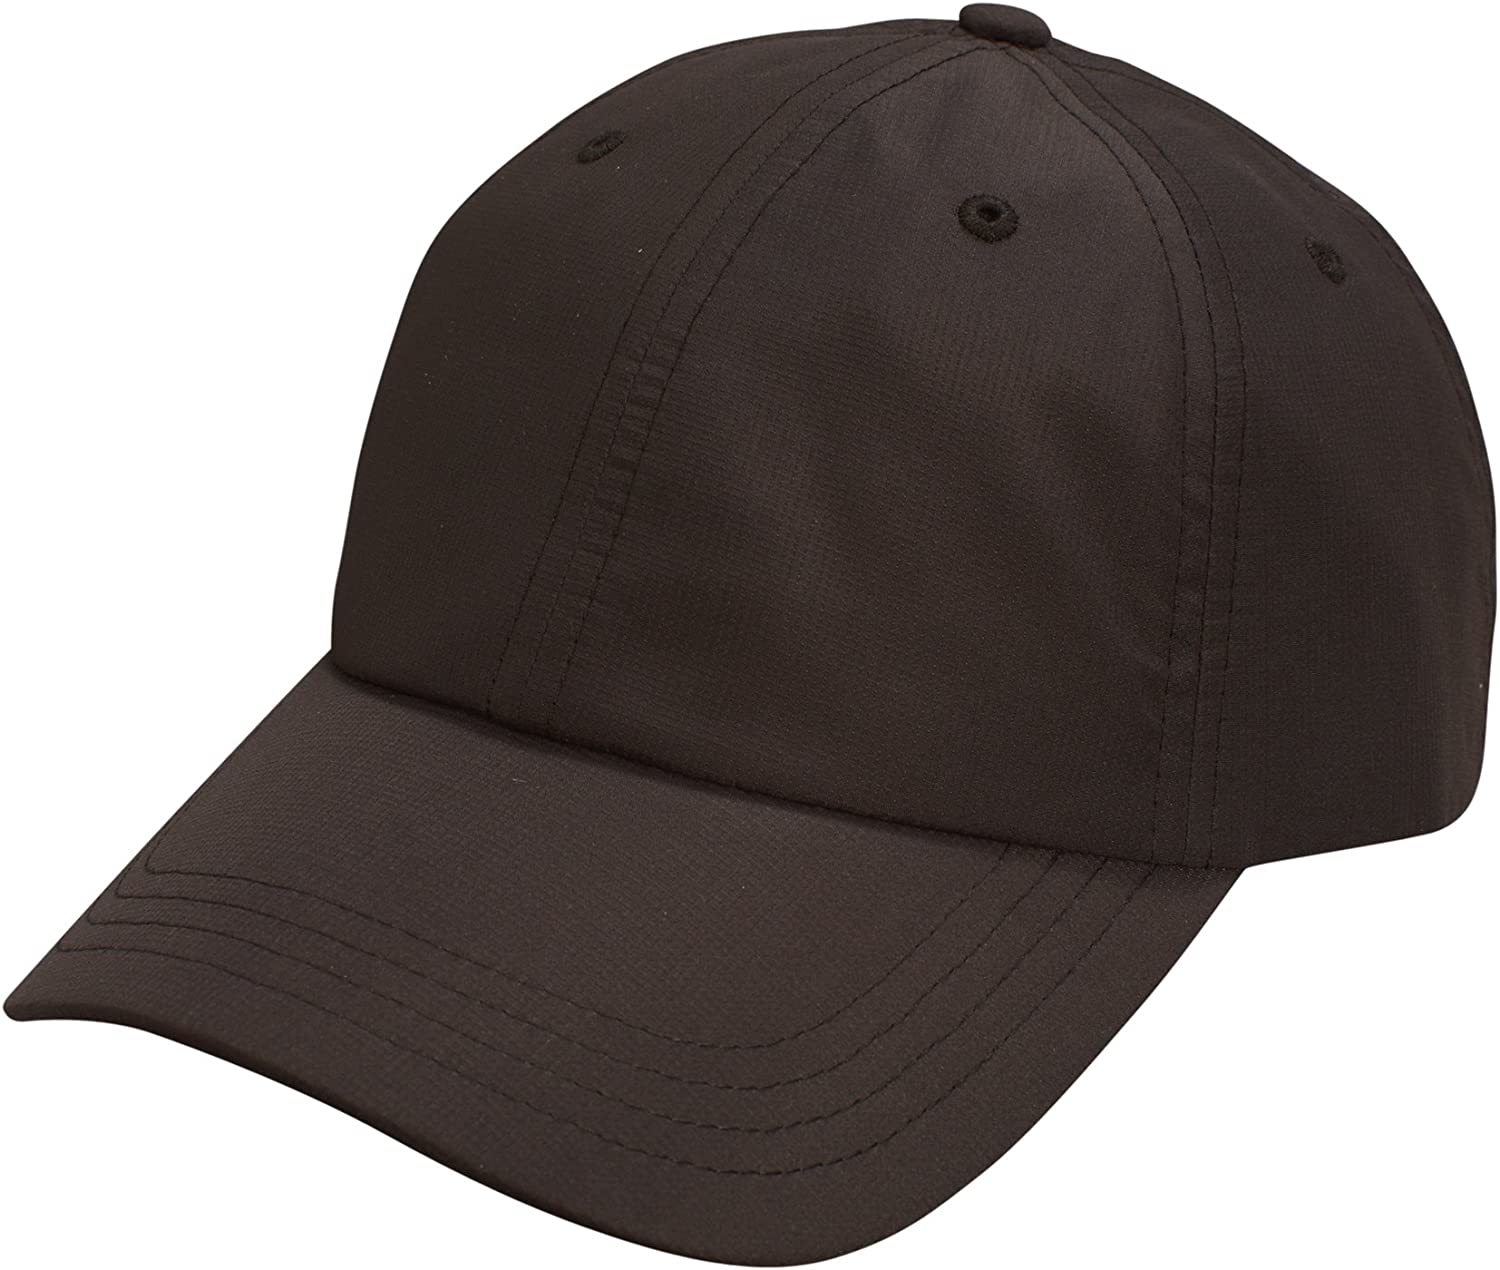 Ouray Sportswear Small Fit Performance Epic Cap